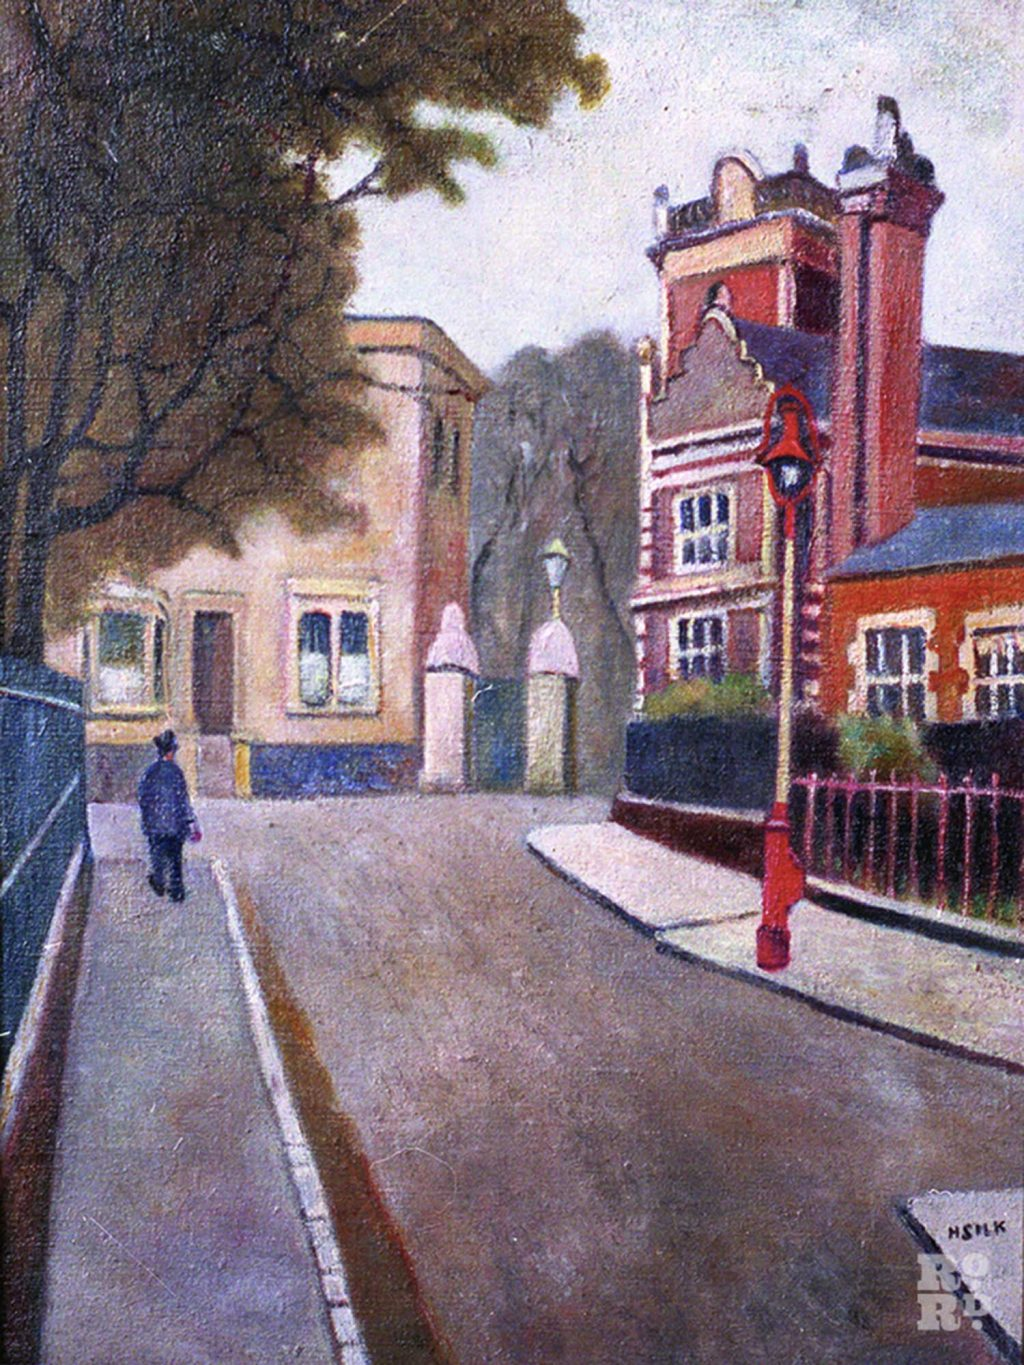 Painting of James Road by Henry Silk of the East London Group